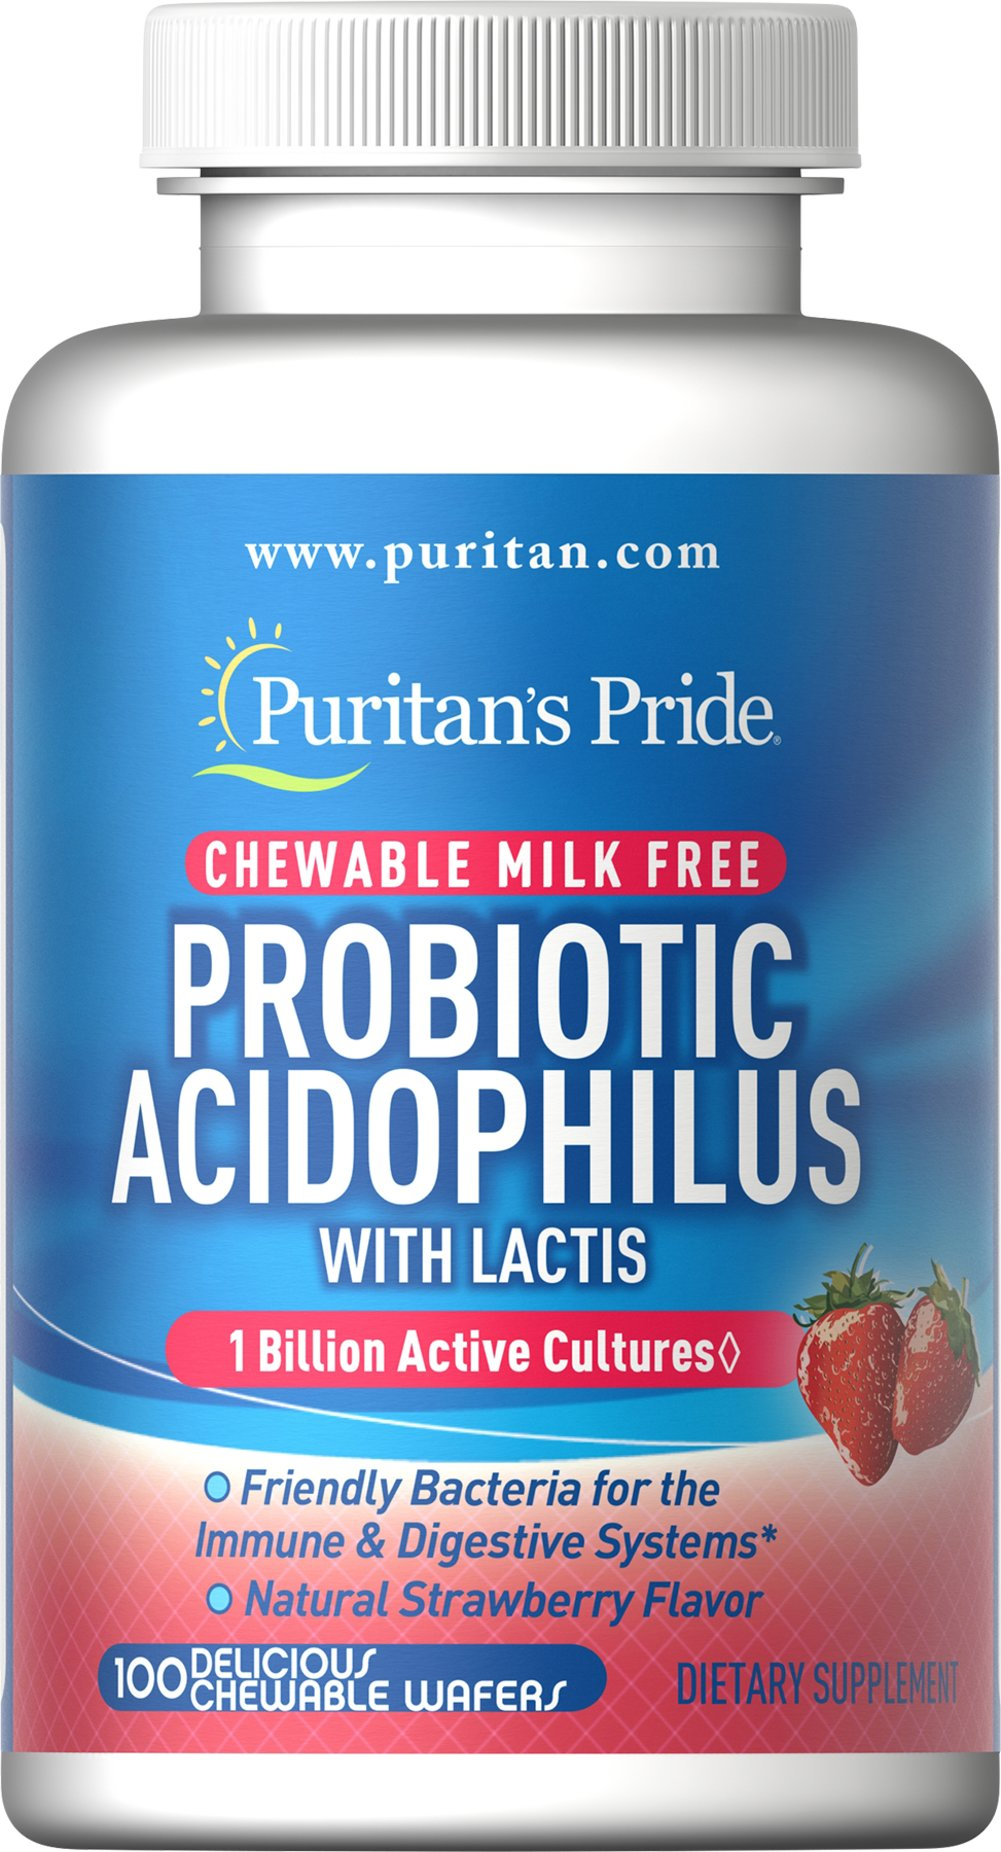 Probiotic Acidophilus Chewables Strawberry </p><p>Nutritionally supports healthy digestion**</p>  <p>Promotes a healthy intestinal balance**</p><p>One billion Organisms at time of manufacture. 100 Chewables  $11.99